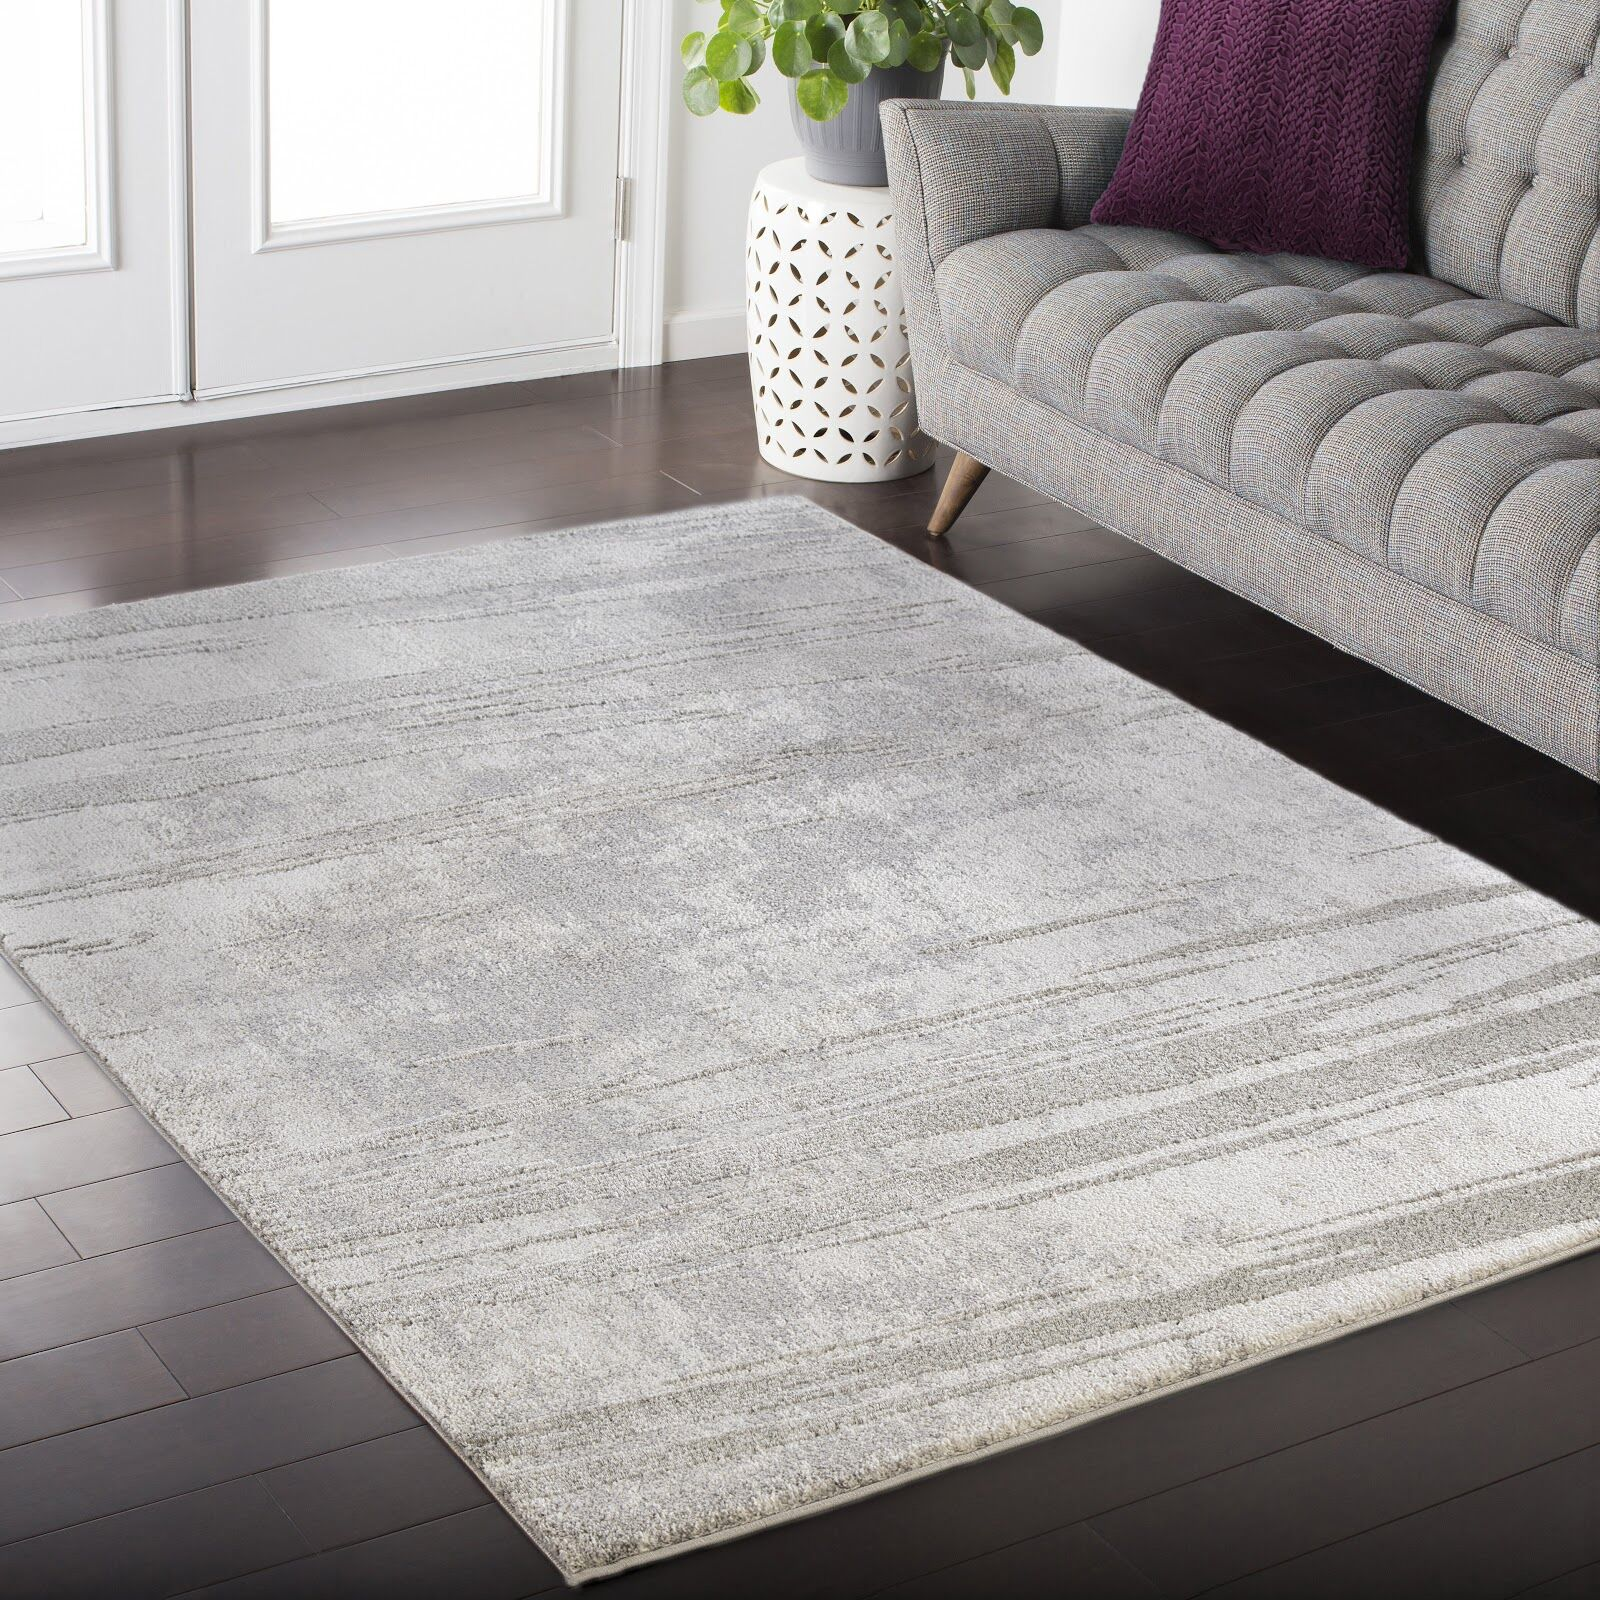 Acuna Gray Area Rug Rug Size: Rectangle 5'2